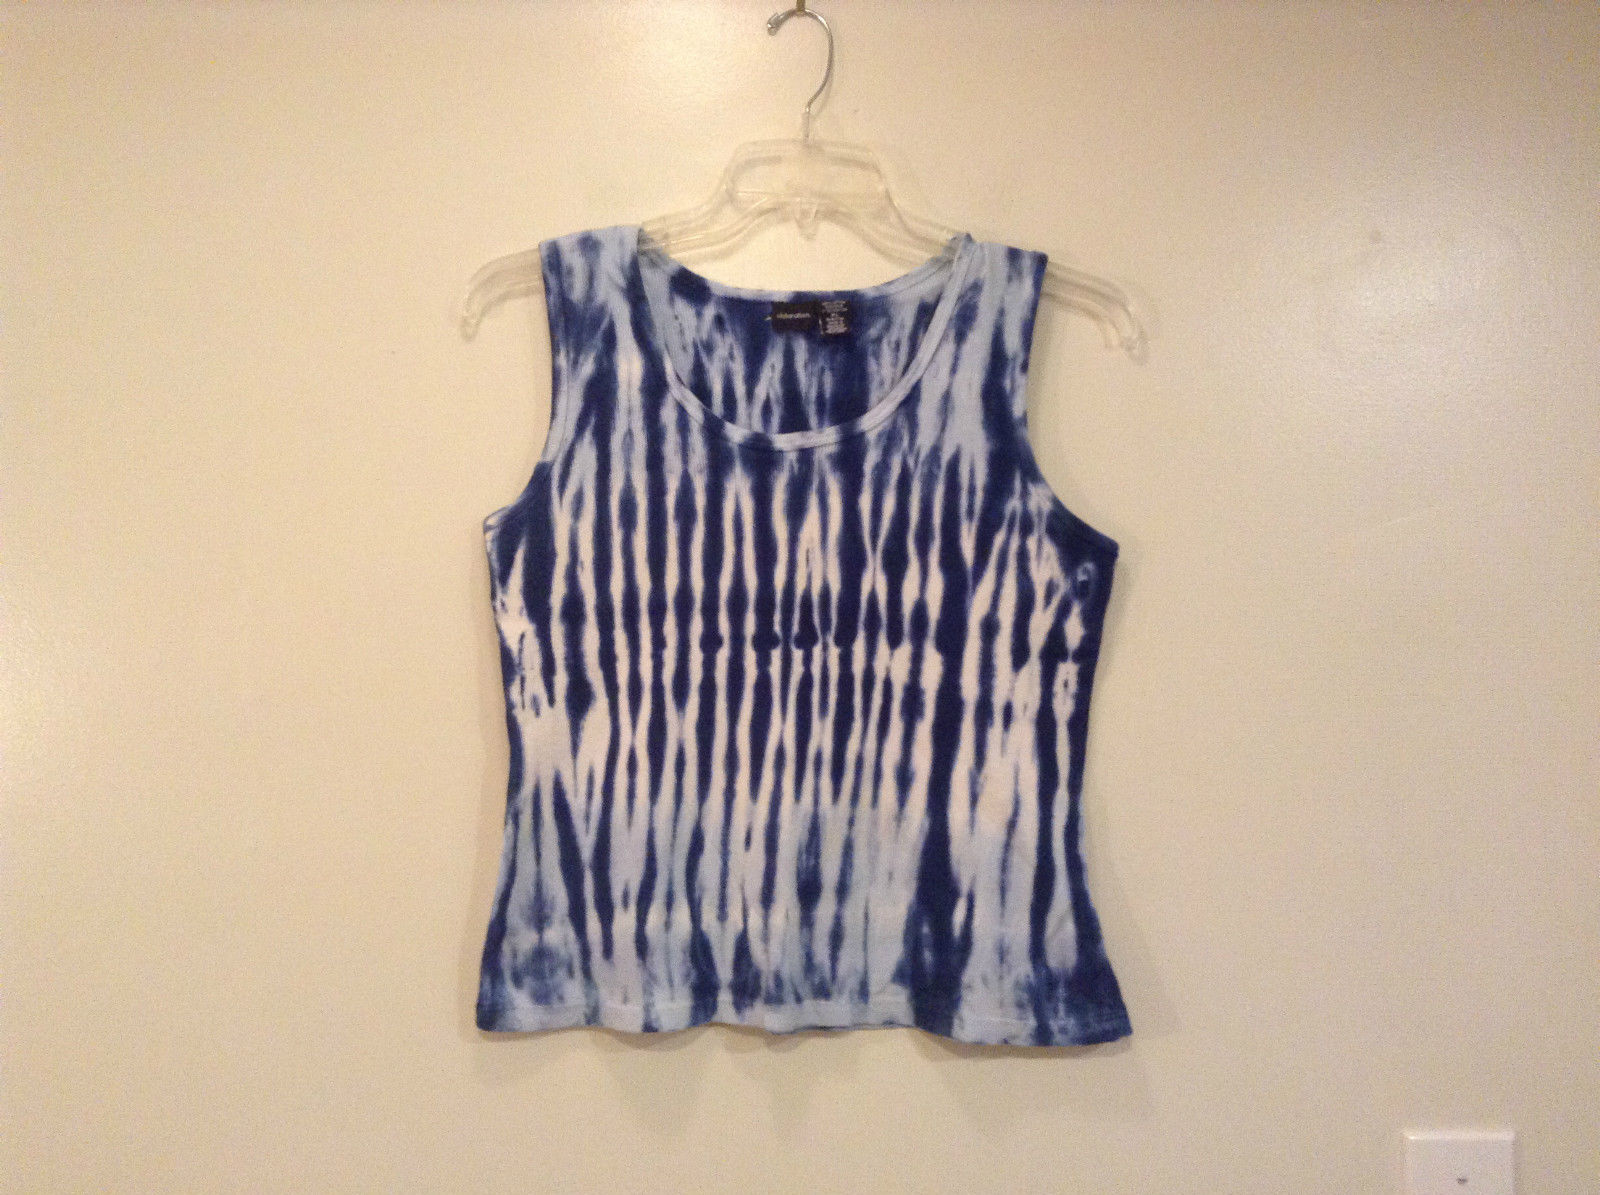 Xhilaration Tie Dye Tank Top Size XL Cotton Dark and Light Blue and White